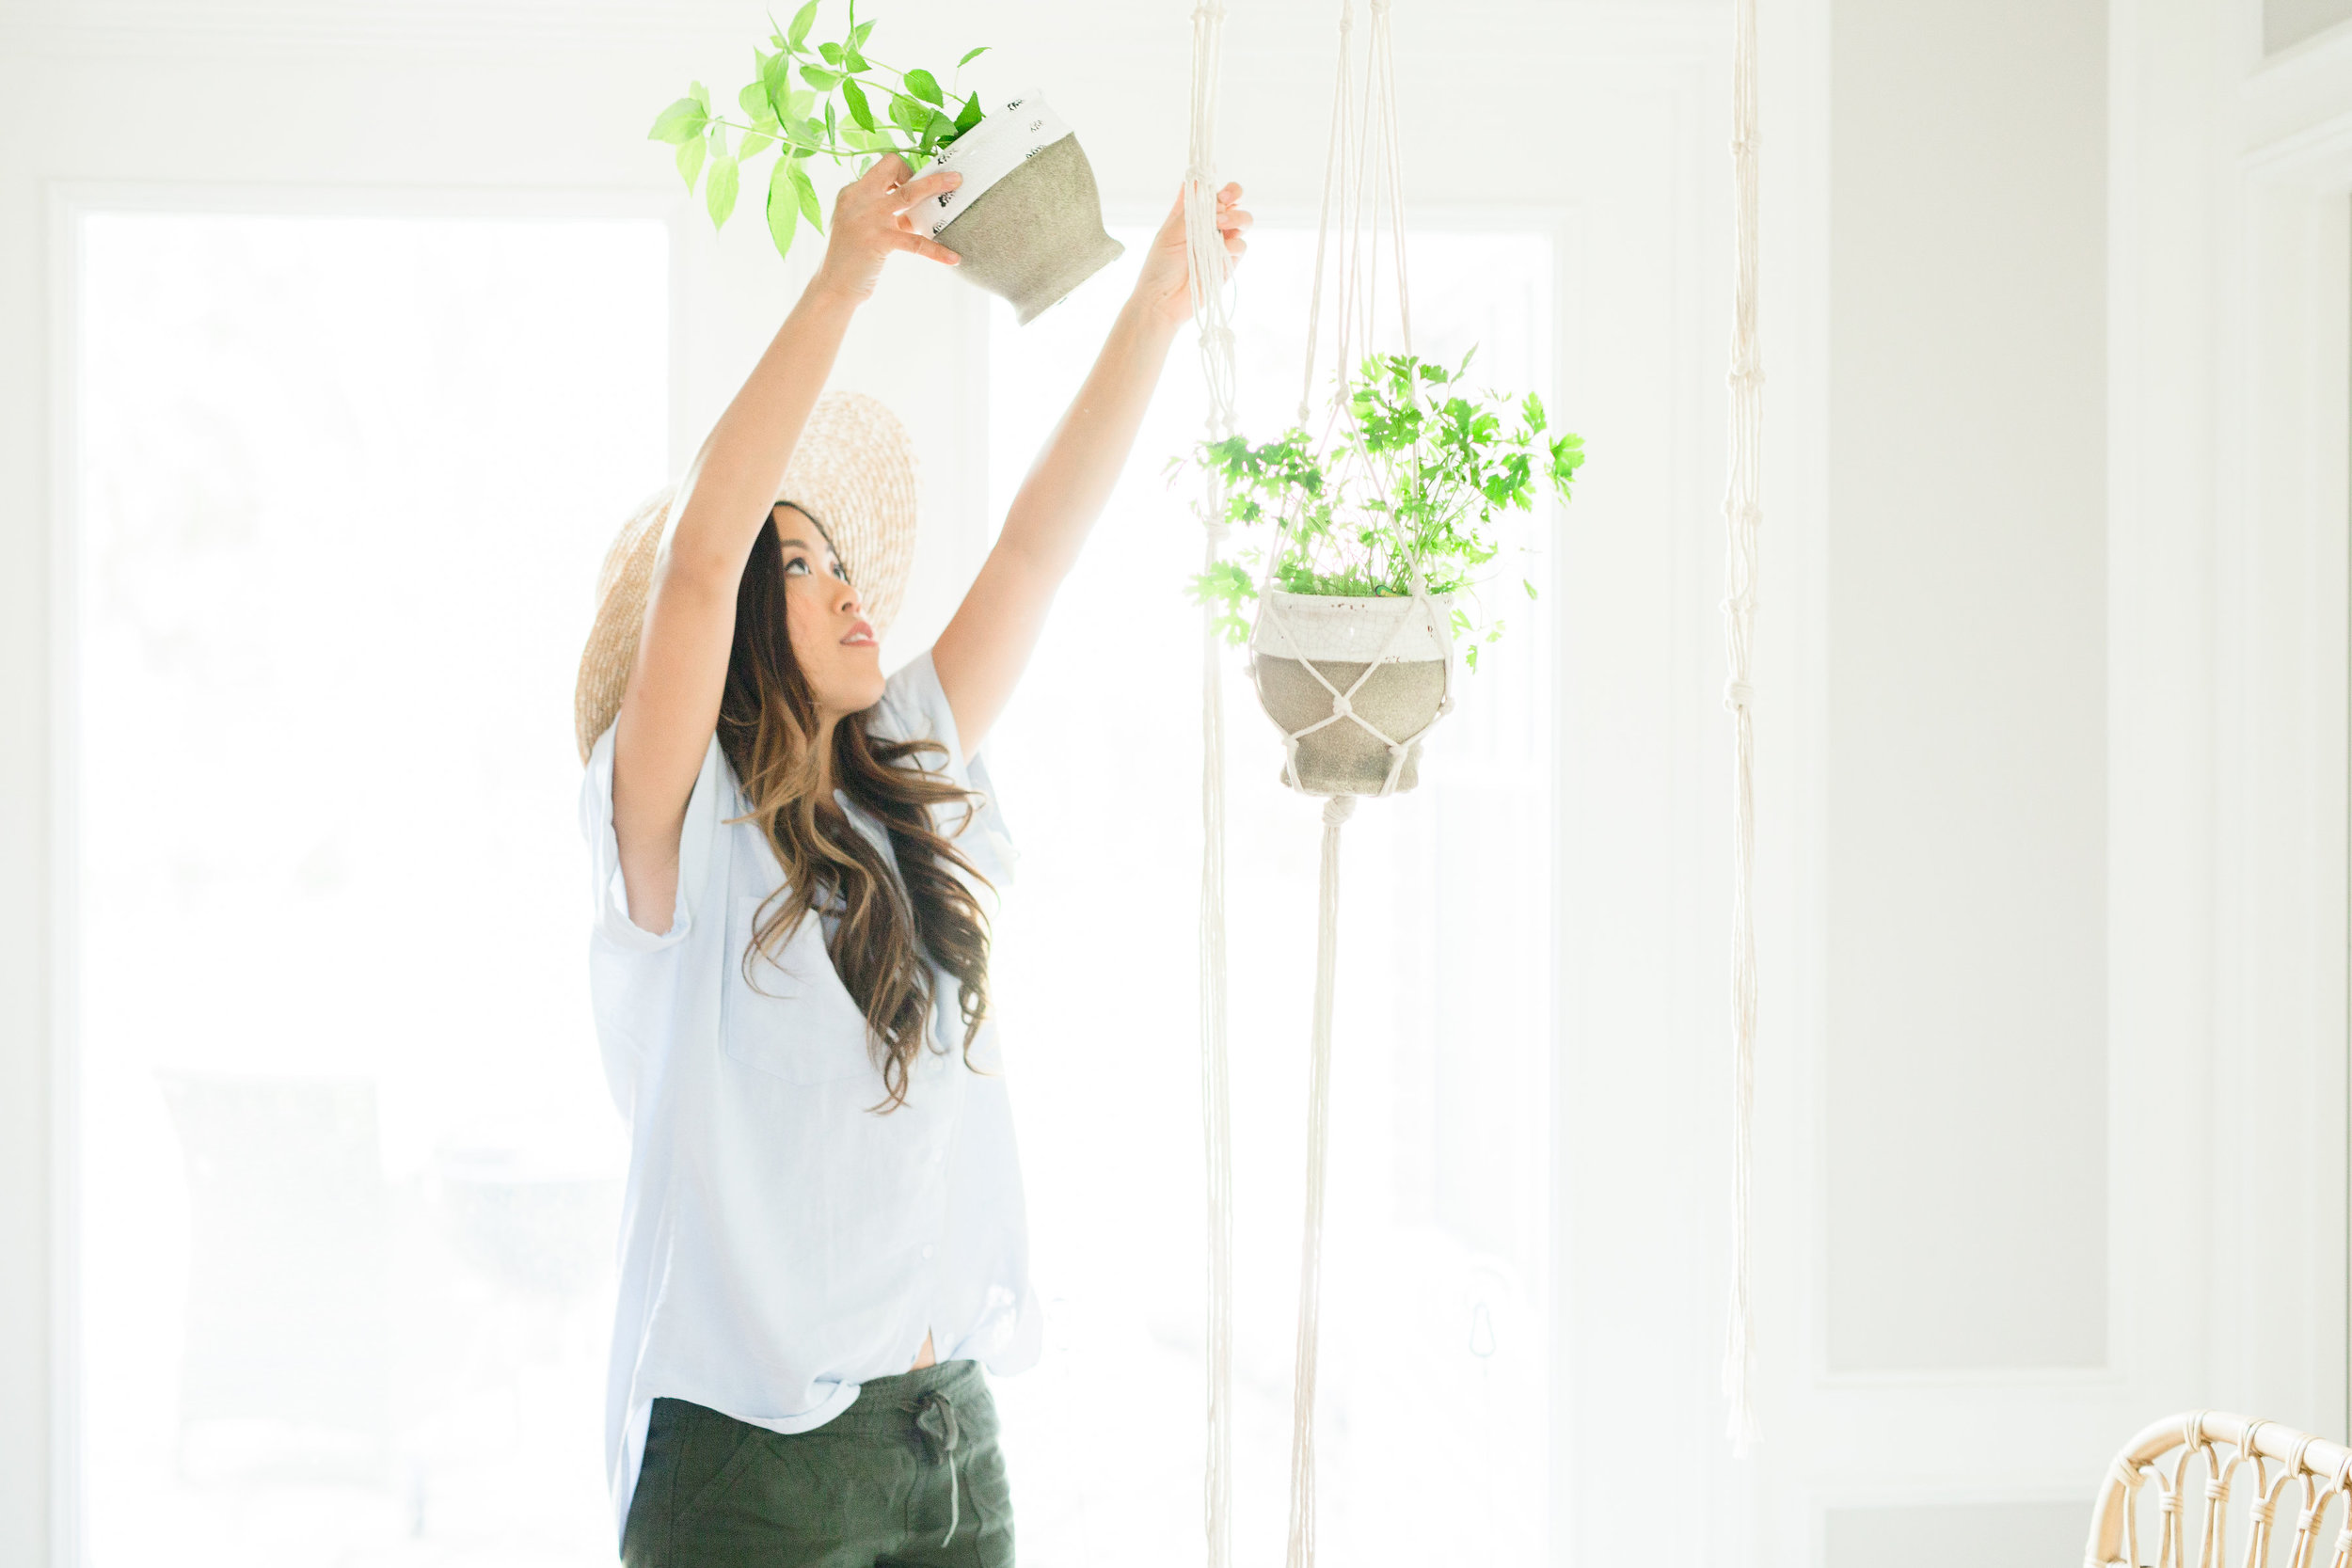 Joyfullygreen Miracle-Gro Bonnie Plants Herb Garden Plant Macrame Hanger DIY